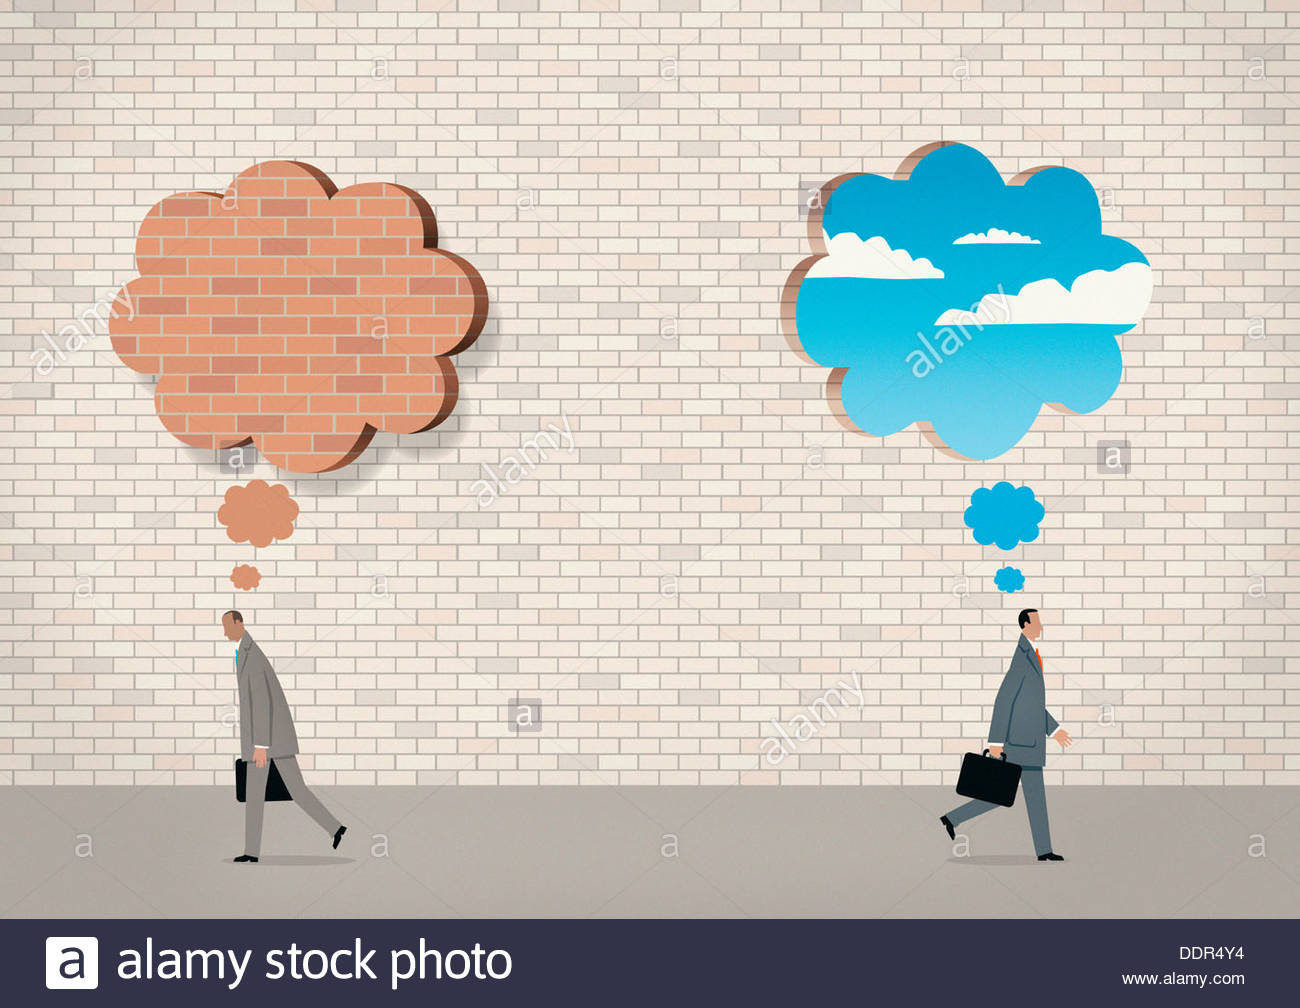 Brick wall thought bubble and blue sky thought bubble above businessmen - Stock Image